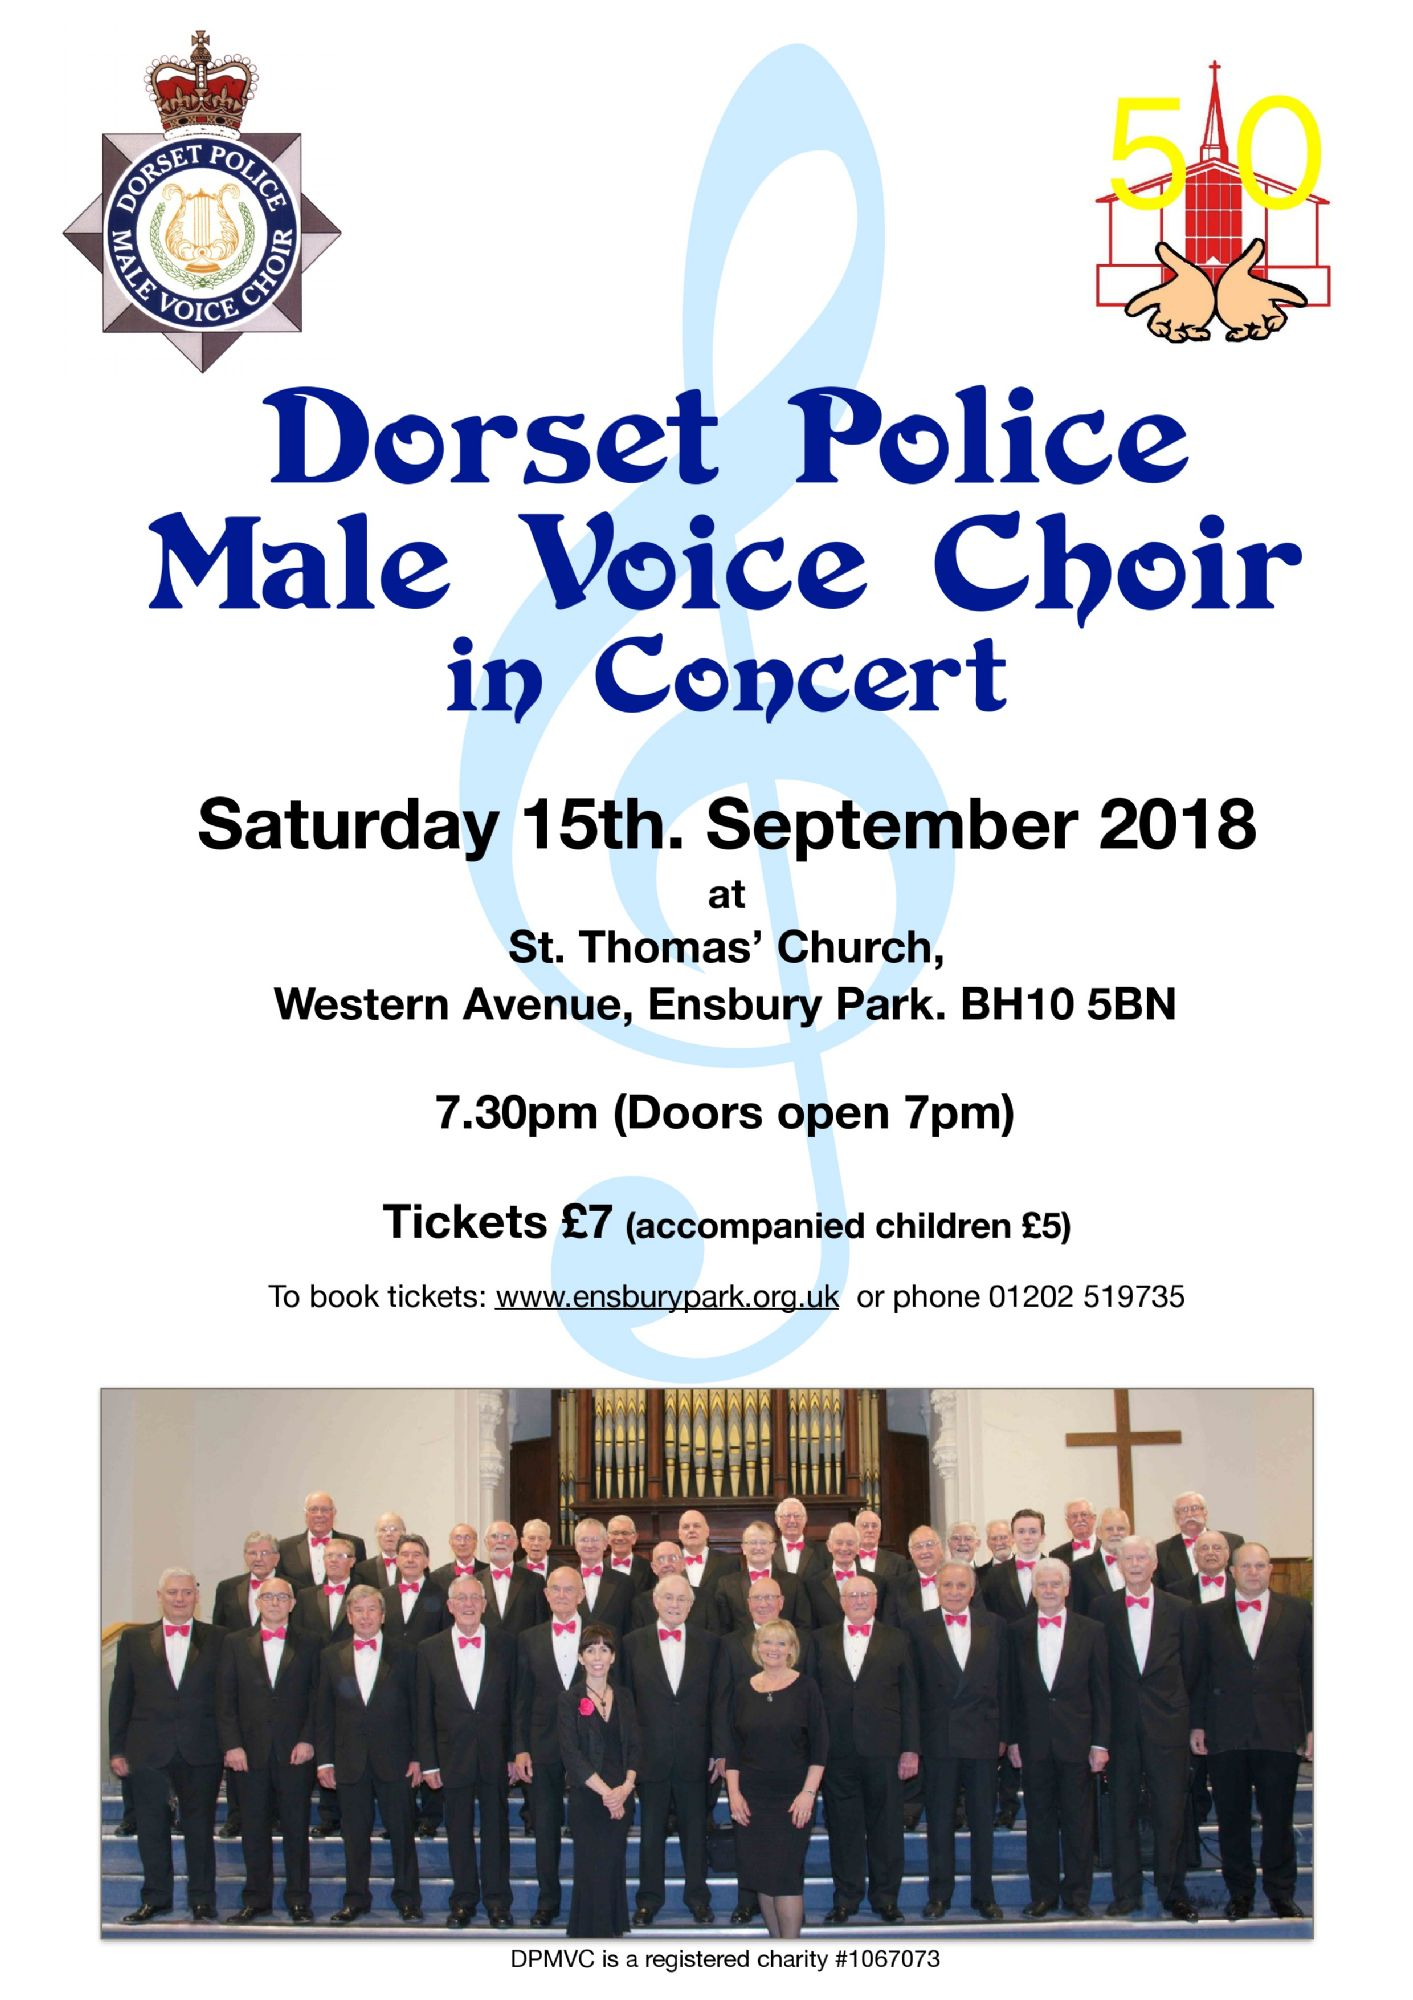 Dorset Police Male Voice Choir Concert